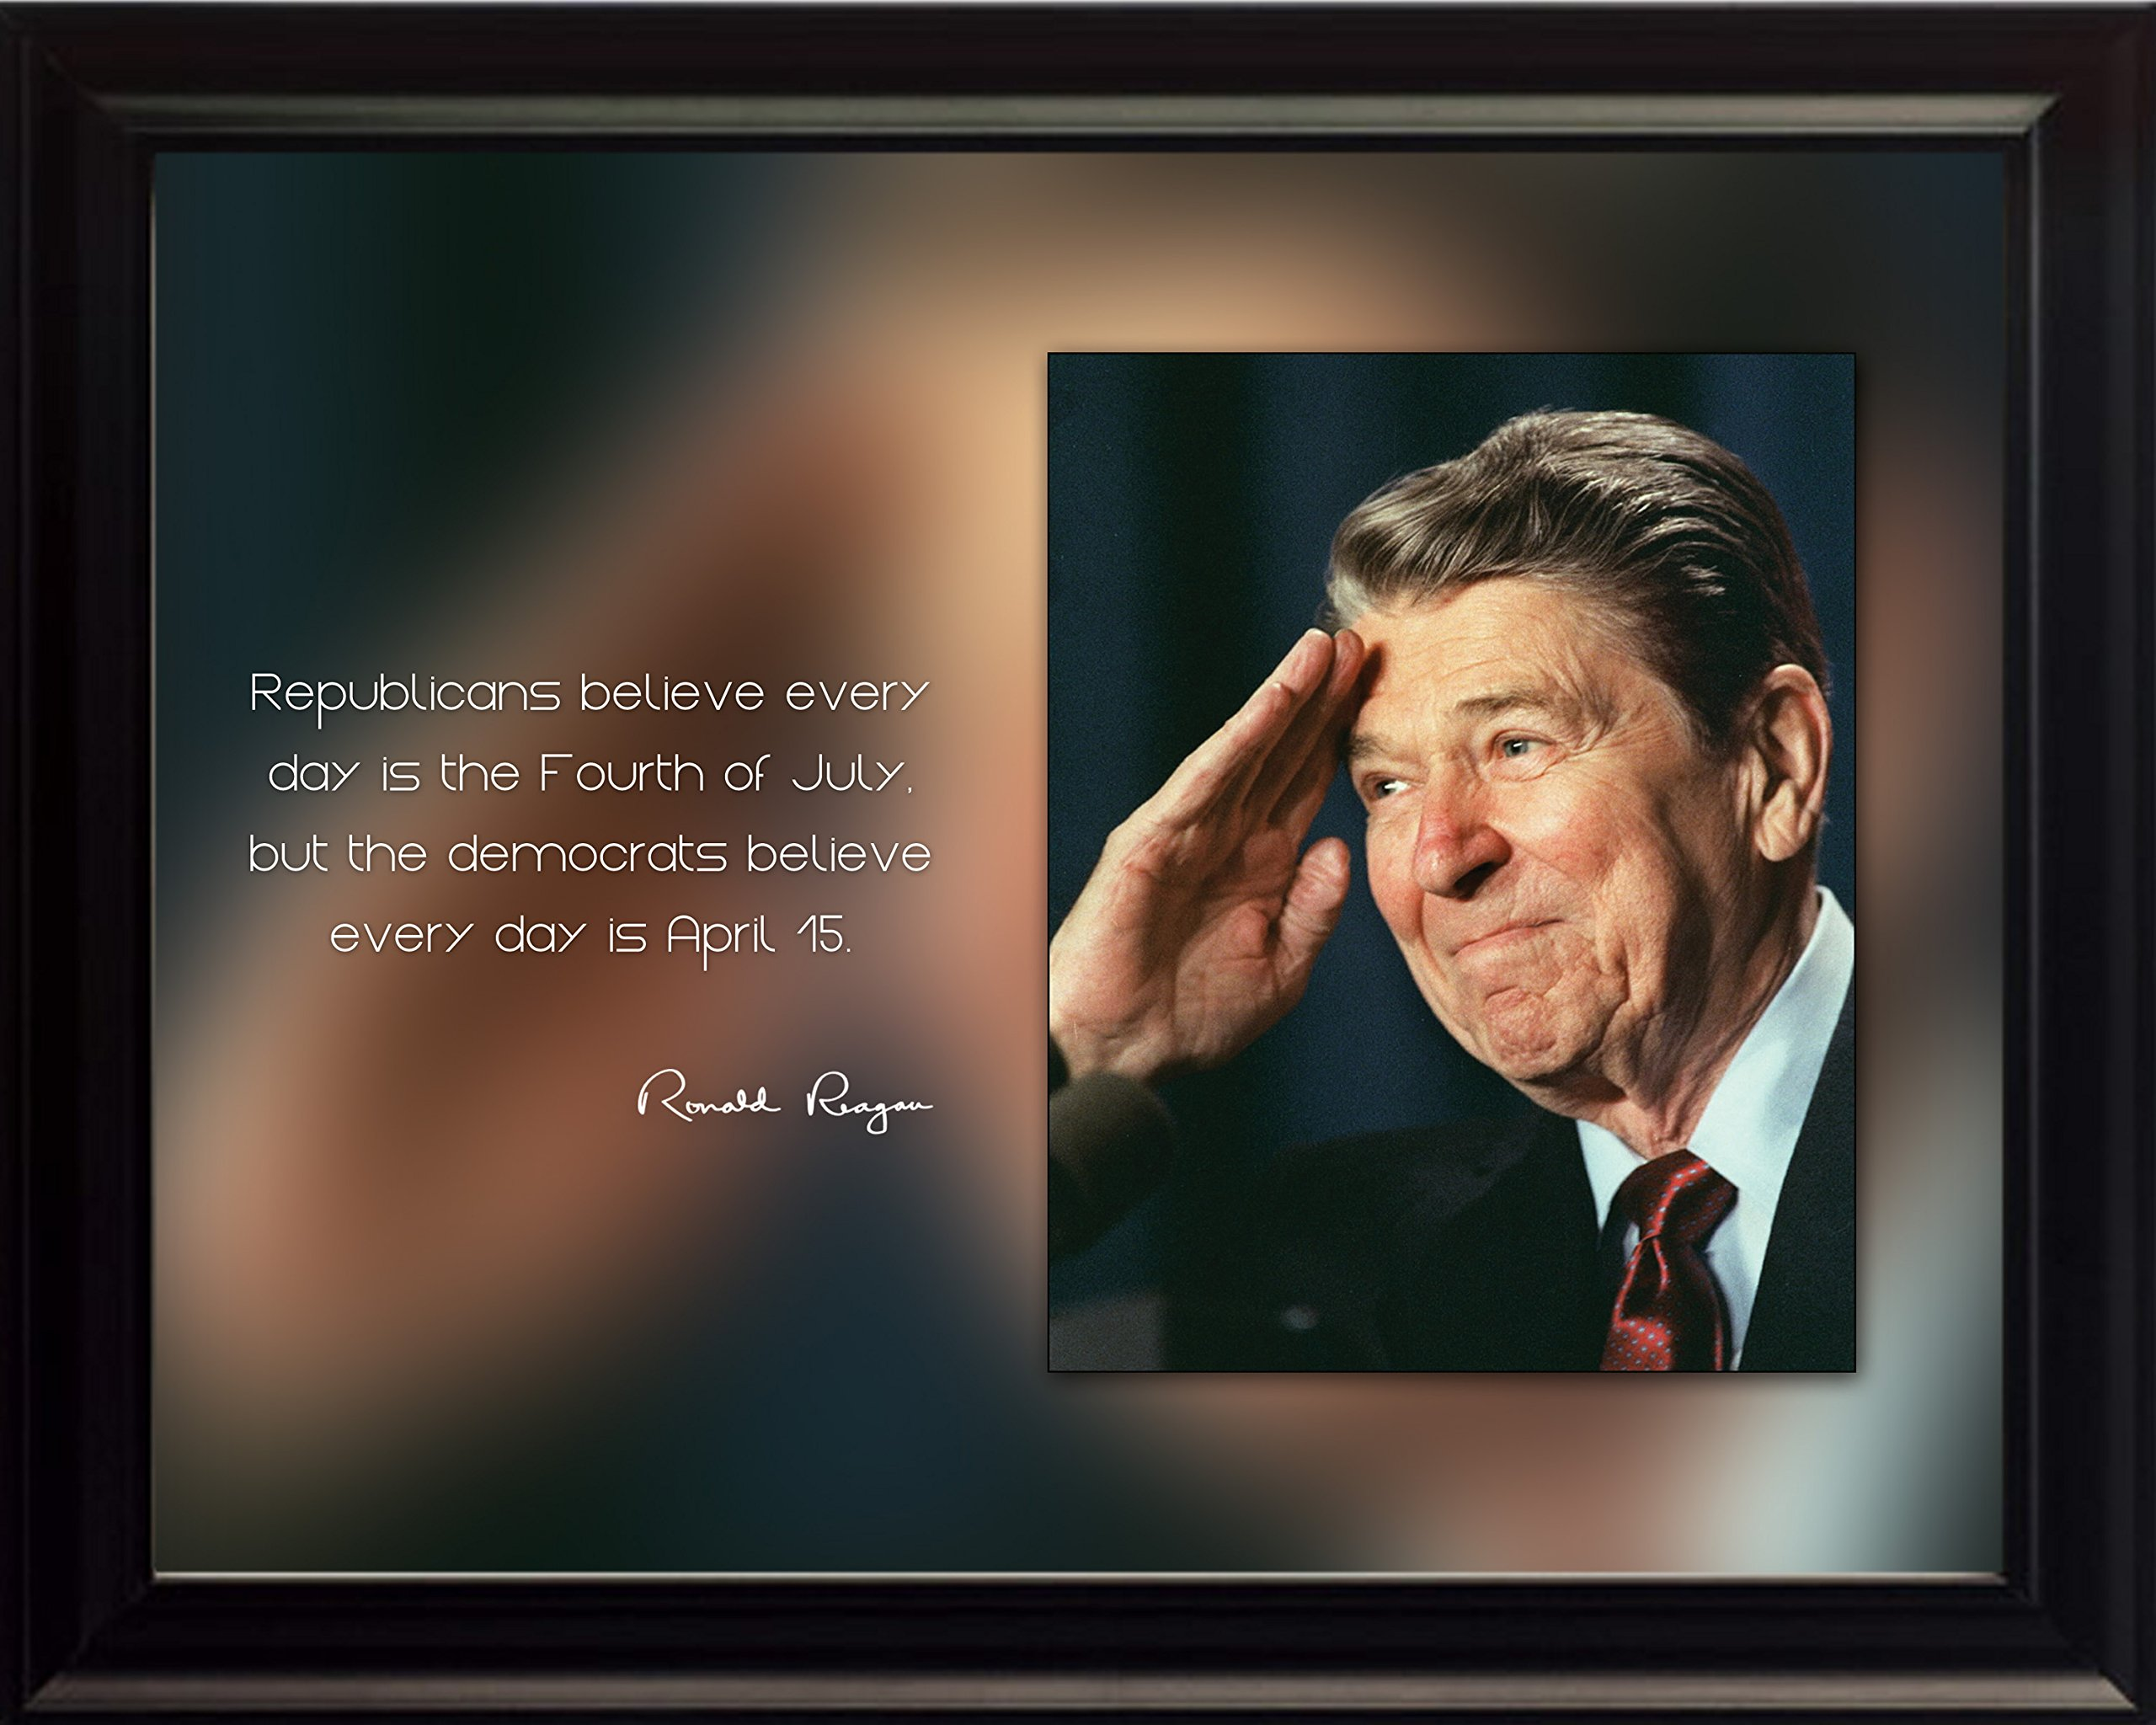 Ronald Reagan Photo Picture Poster Framed Quote''Republicans believe every day is the Fourth of July'' US President Portrait Famous Inspirational Motivational Quotes (8x10 Framed)